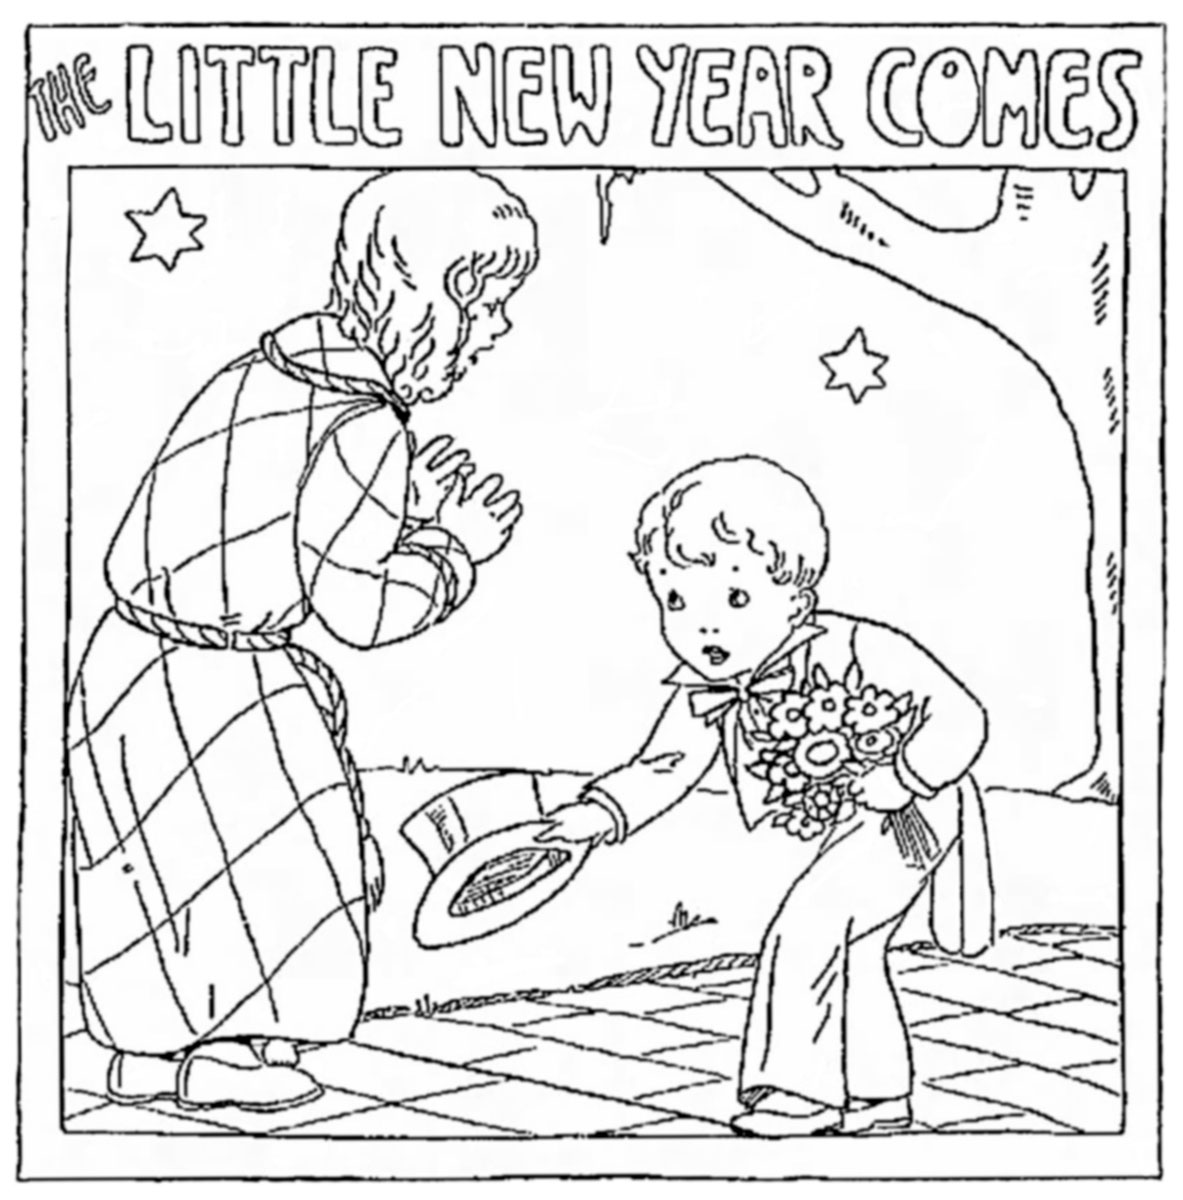 Little-New-Year-Comes-1929